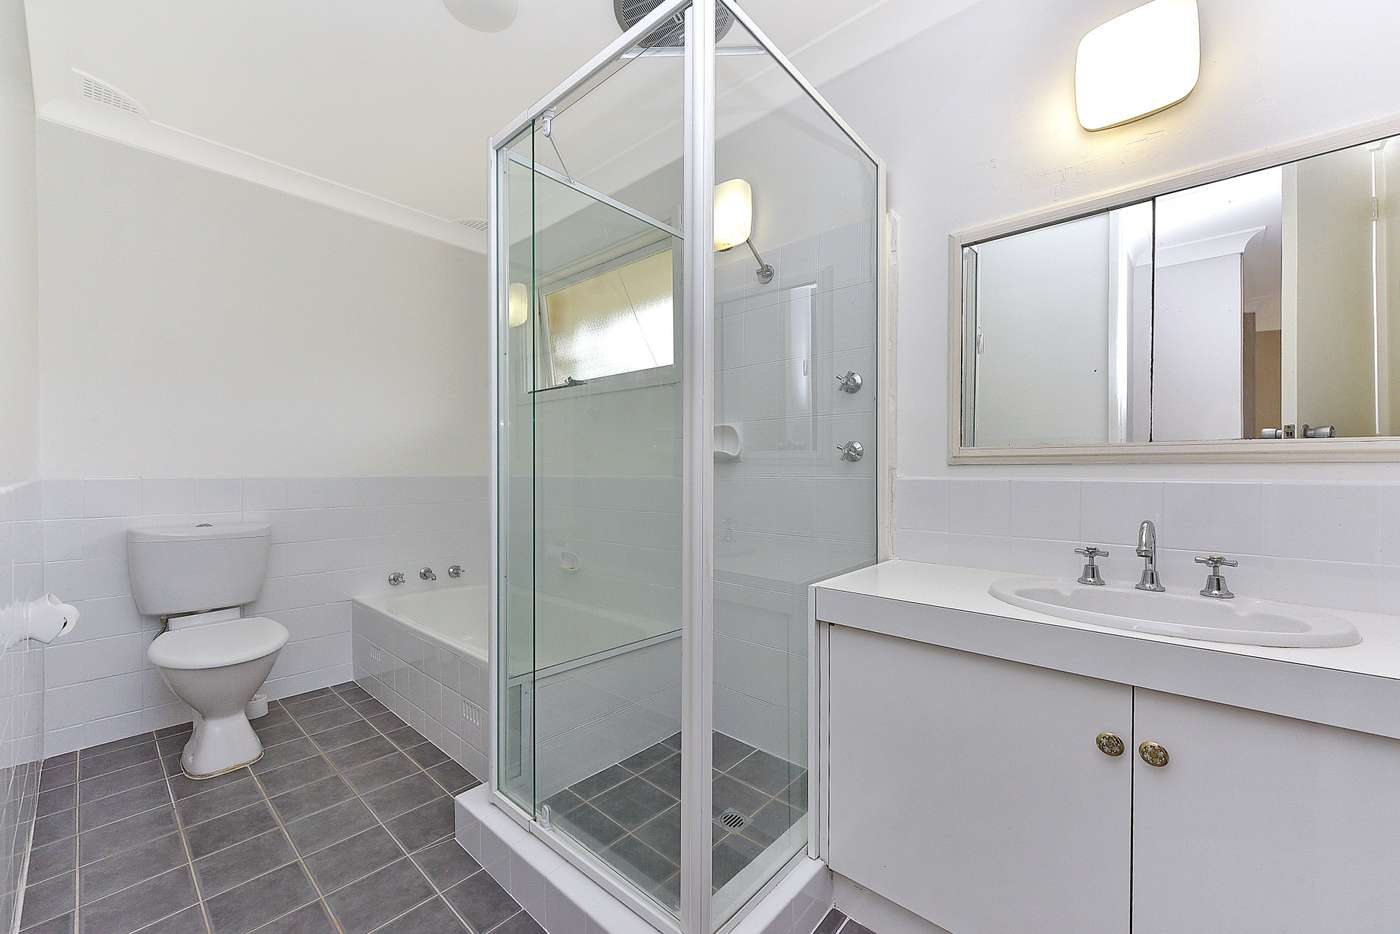 Fifth view of Homely house listing, 5 Apanie Place, Westleigh NSW 2120